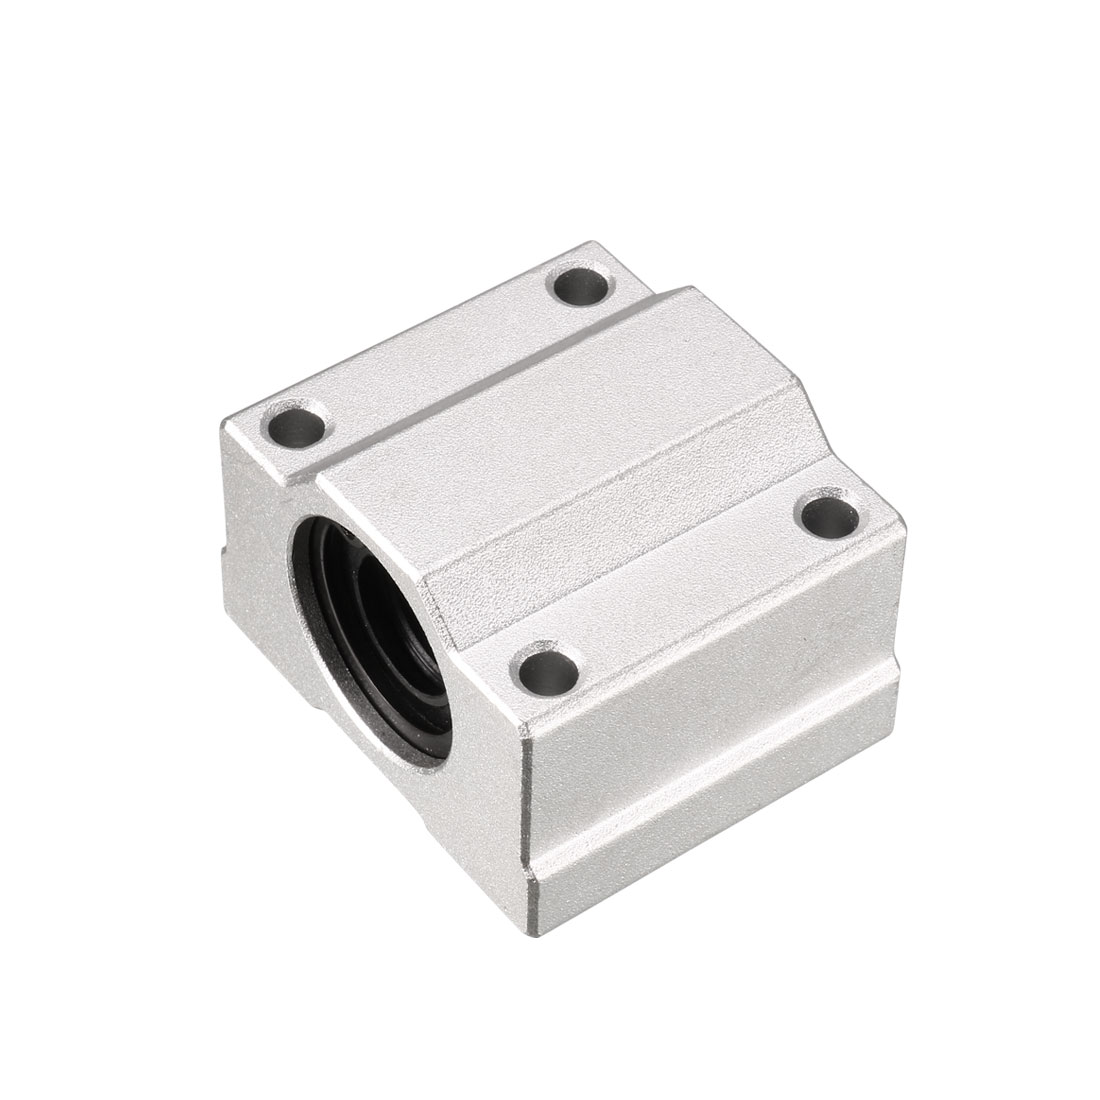 SCS12UU 12mm Metal Linear Motion Ball Bearing for CNC